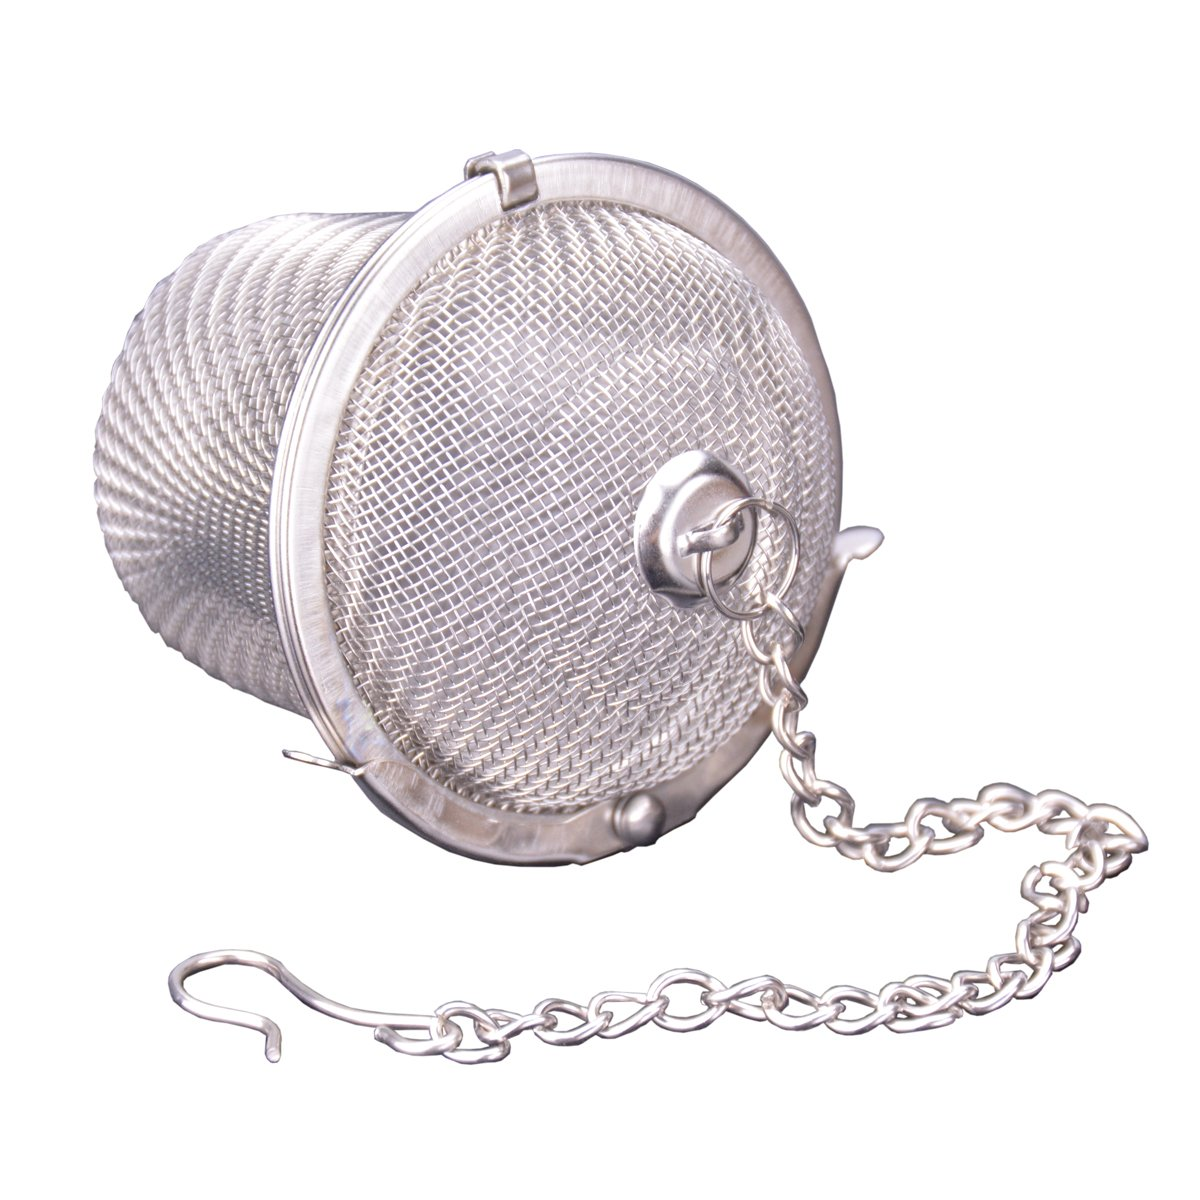 Ilyever Stainless Steel Mesh Tea Bag Strainer filter Infuser for Loose Leaf Grain Tea Cups, Mugs, and Teapots by ilyever (Image #3)